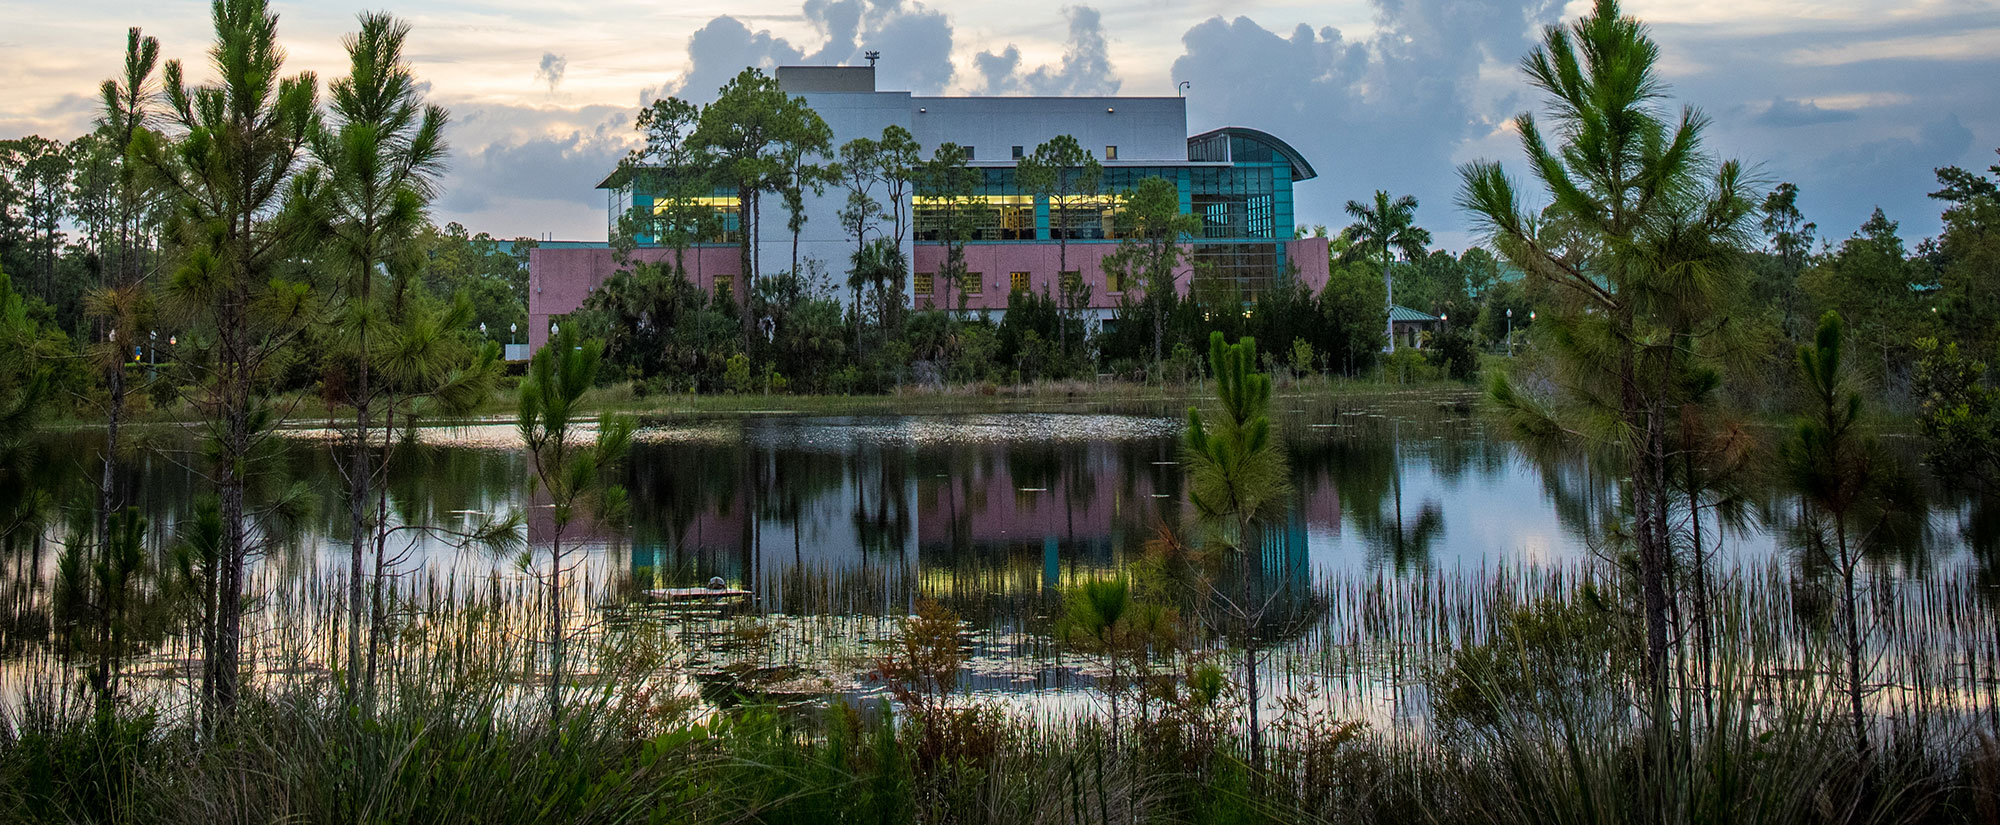 Florida Gulf Coast University is one of many institutions dealing with declining student housing revenues due to the coronavirus. (Florida Gulf Coast University)